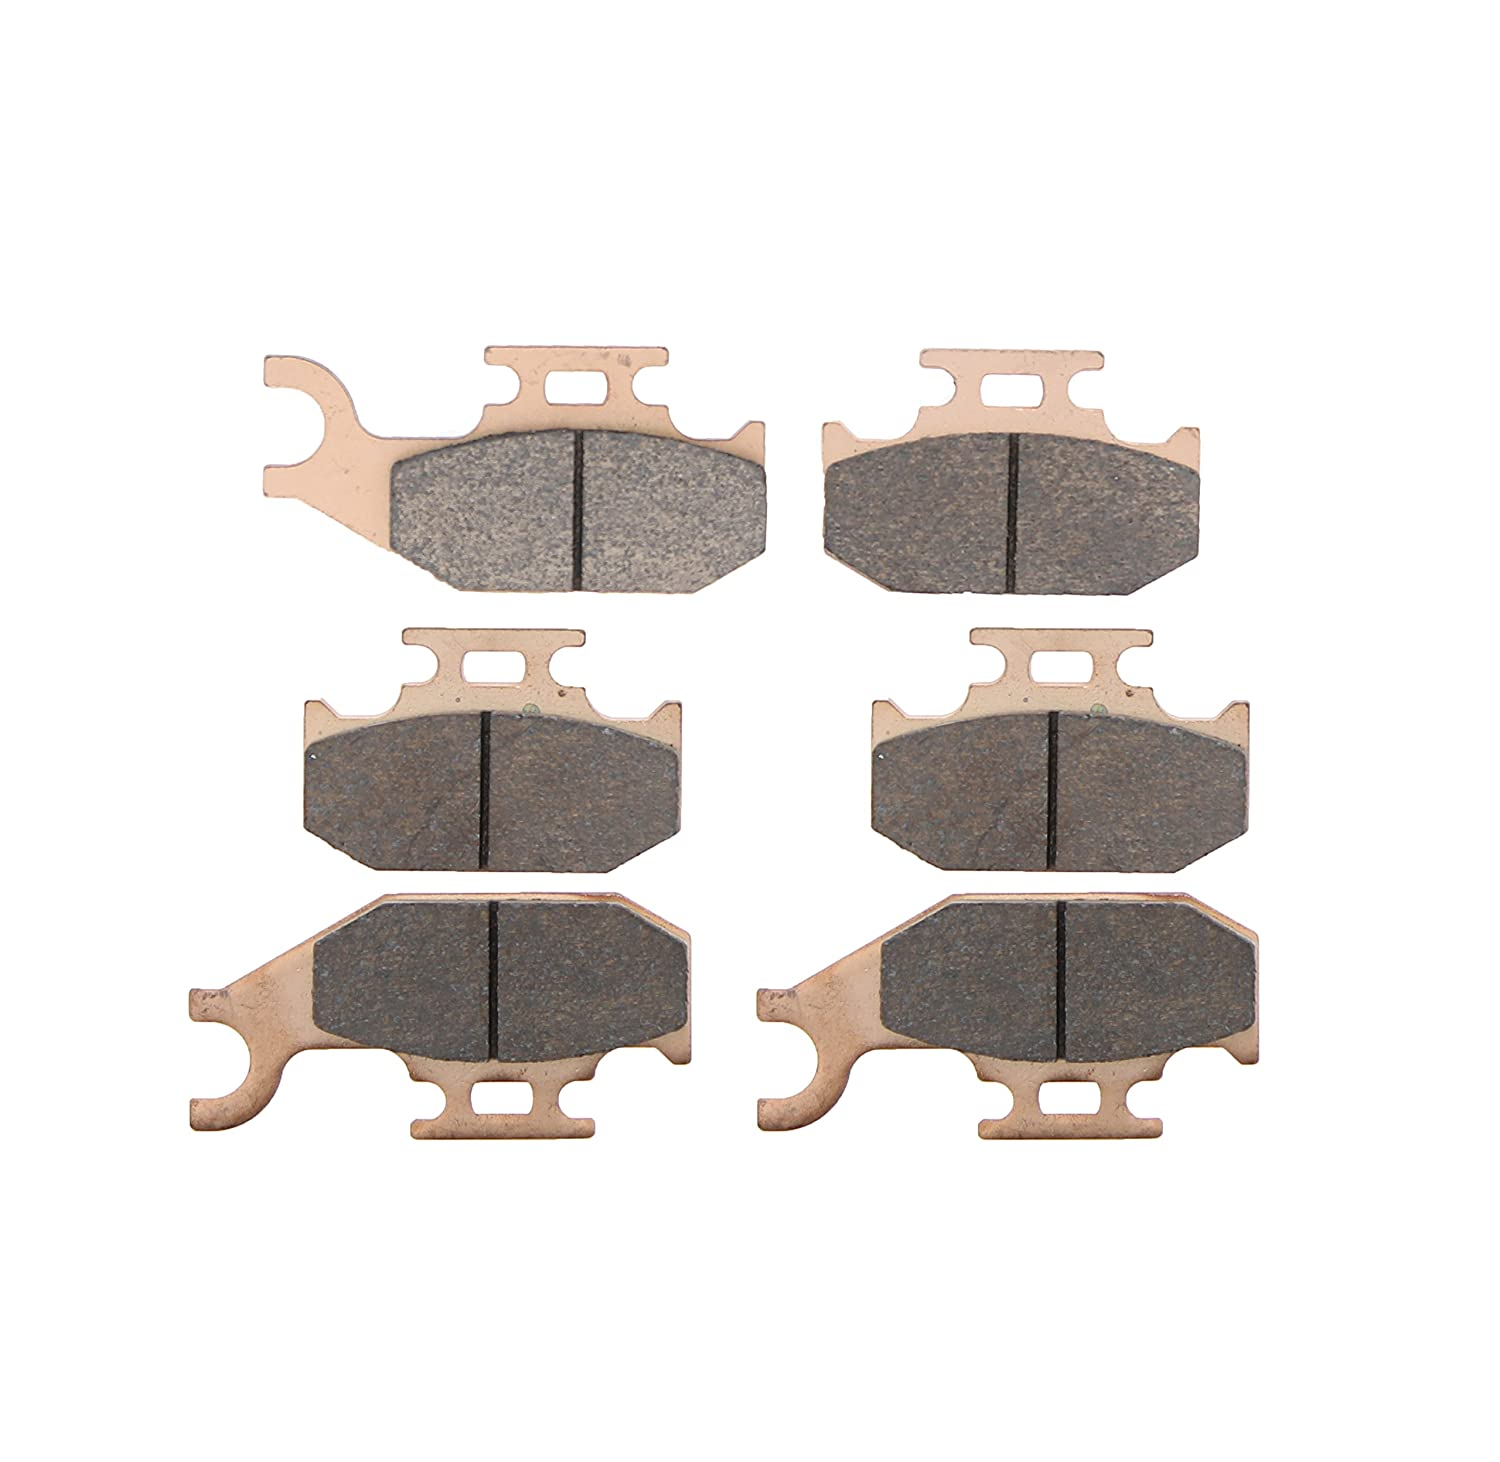 2007 2008 2009 fits Can-Am Outlander 650 Front and Rear Brake Pads Severe Duty